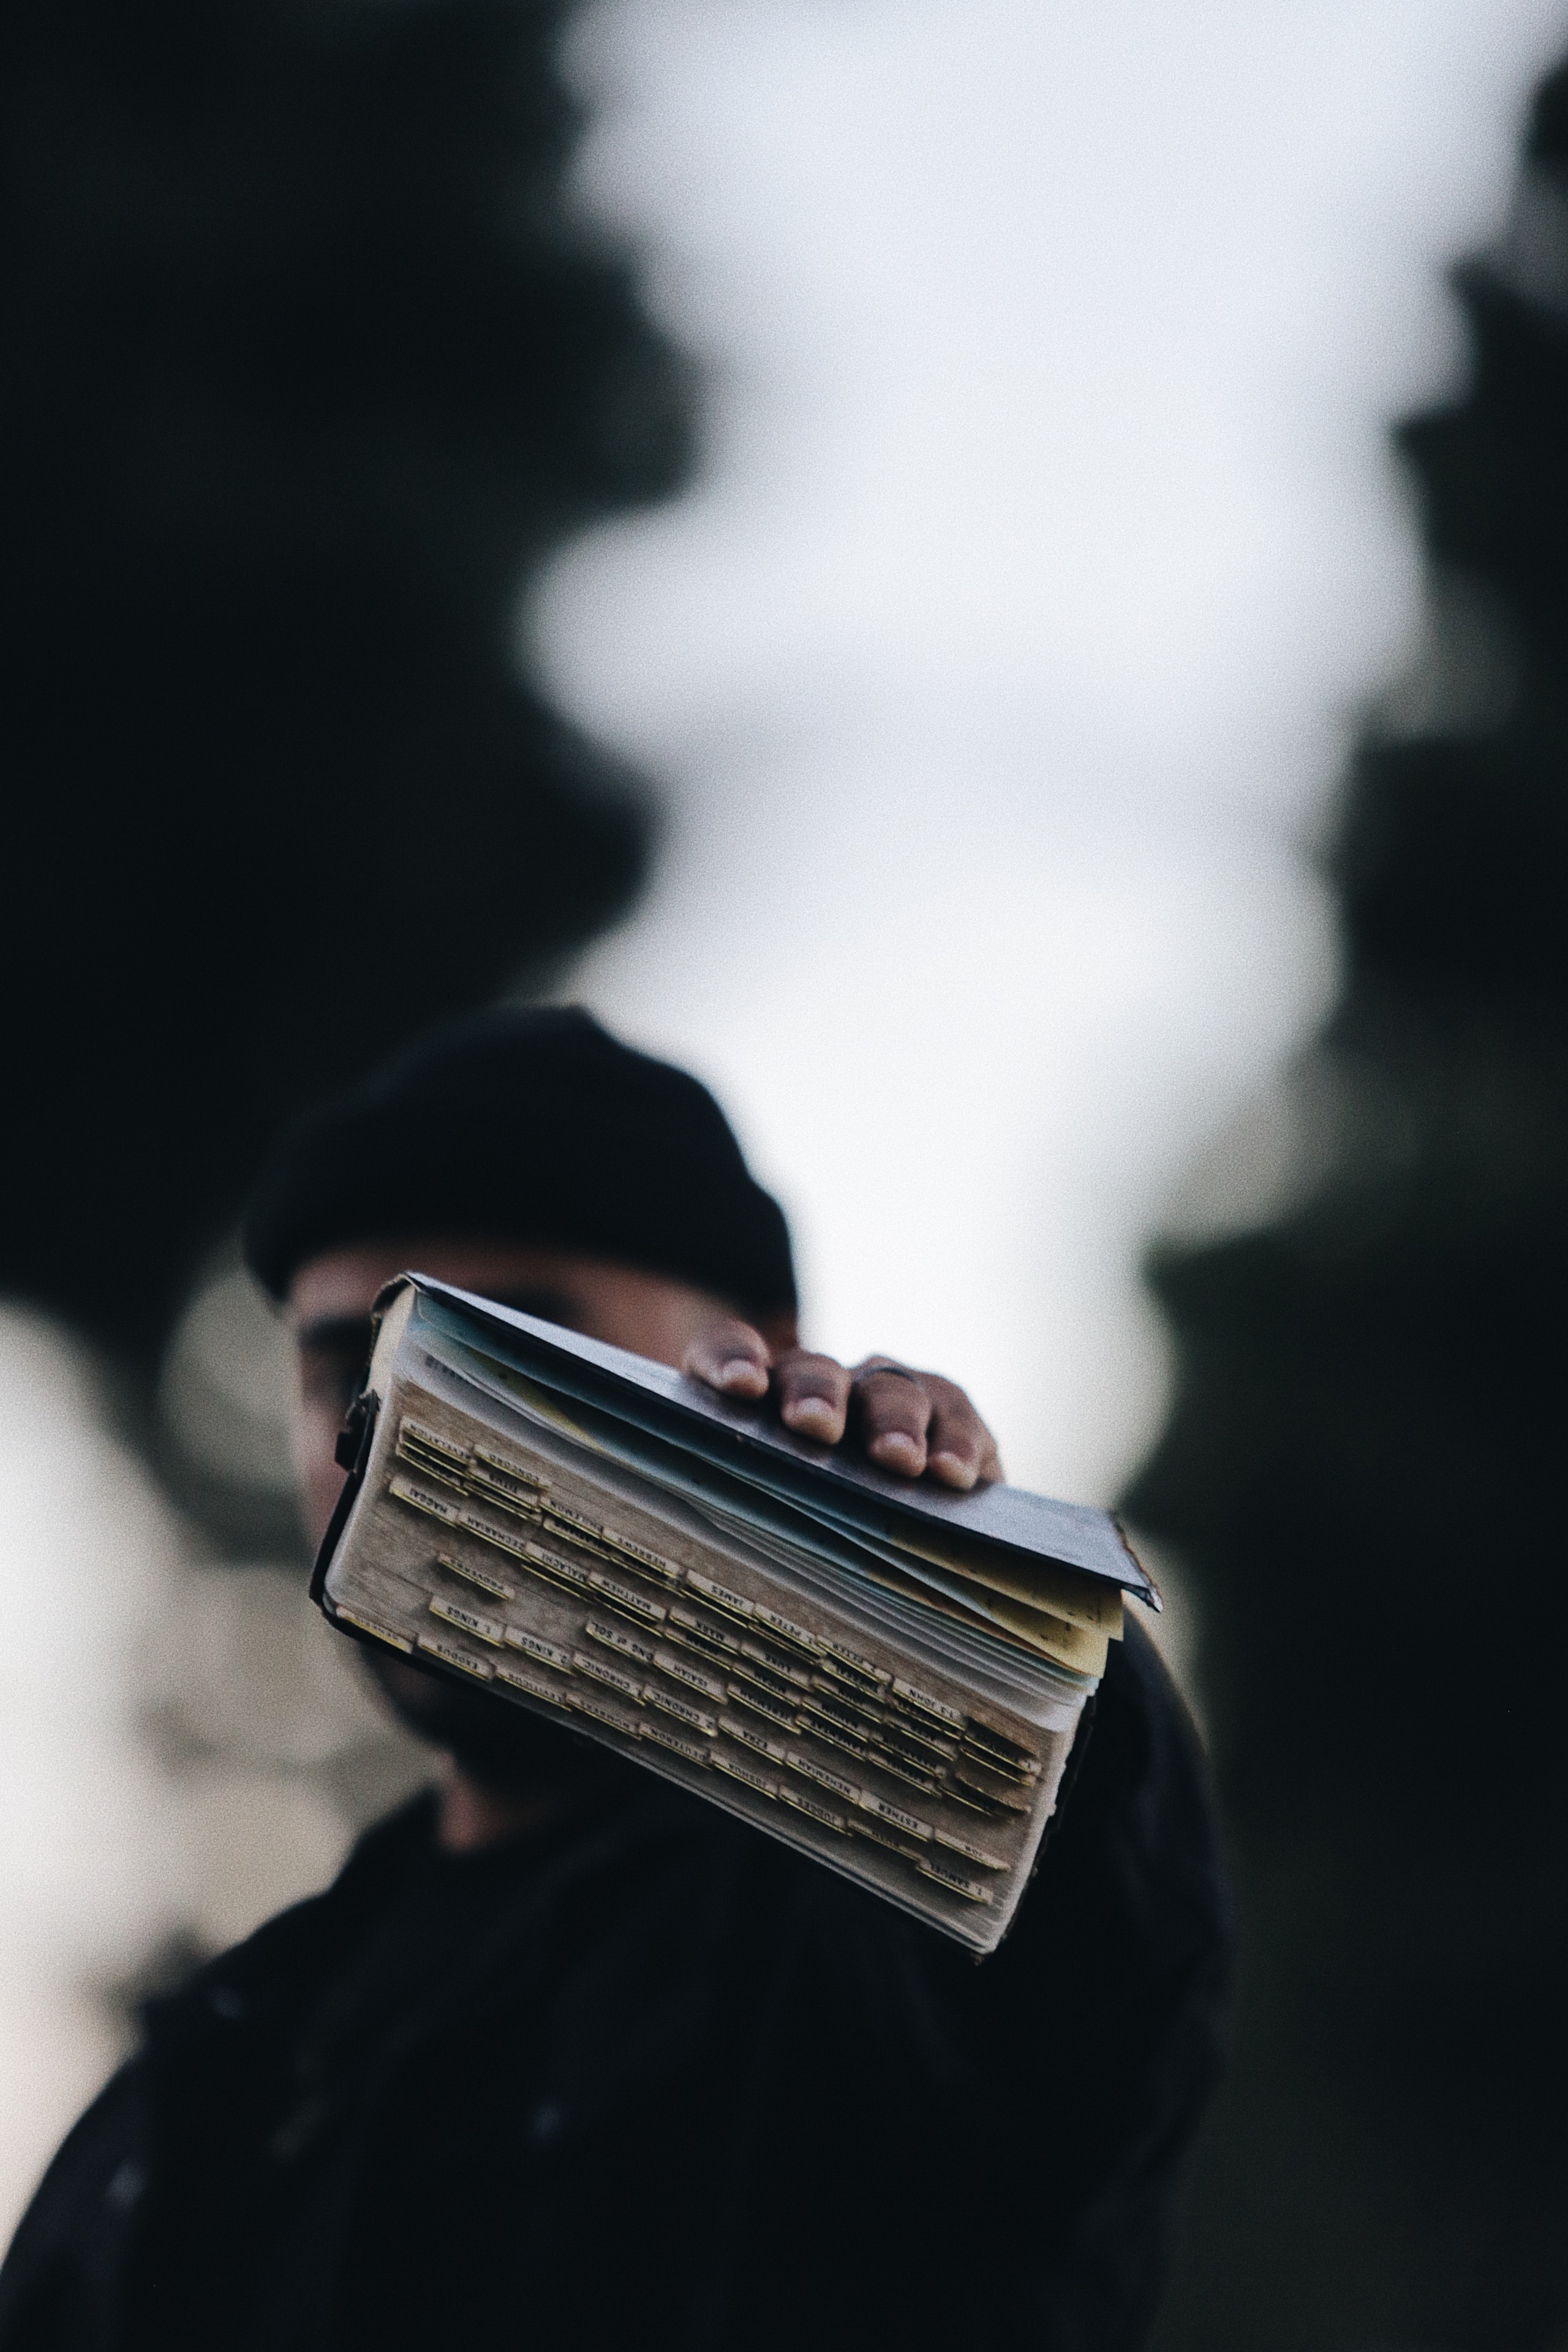 Man holding the Bible.